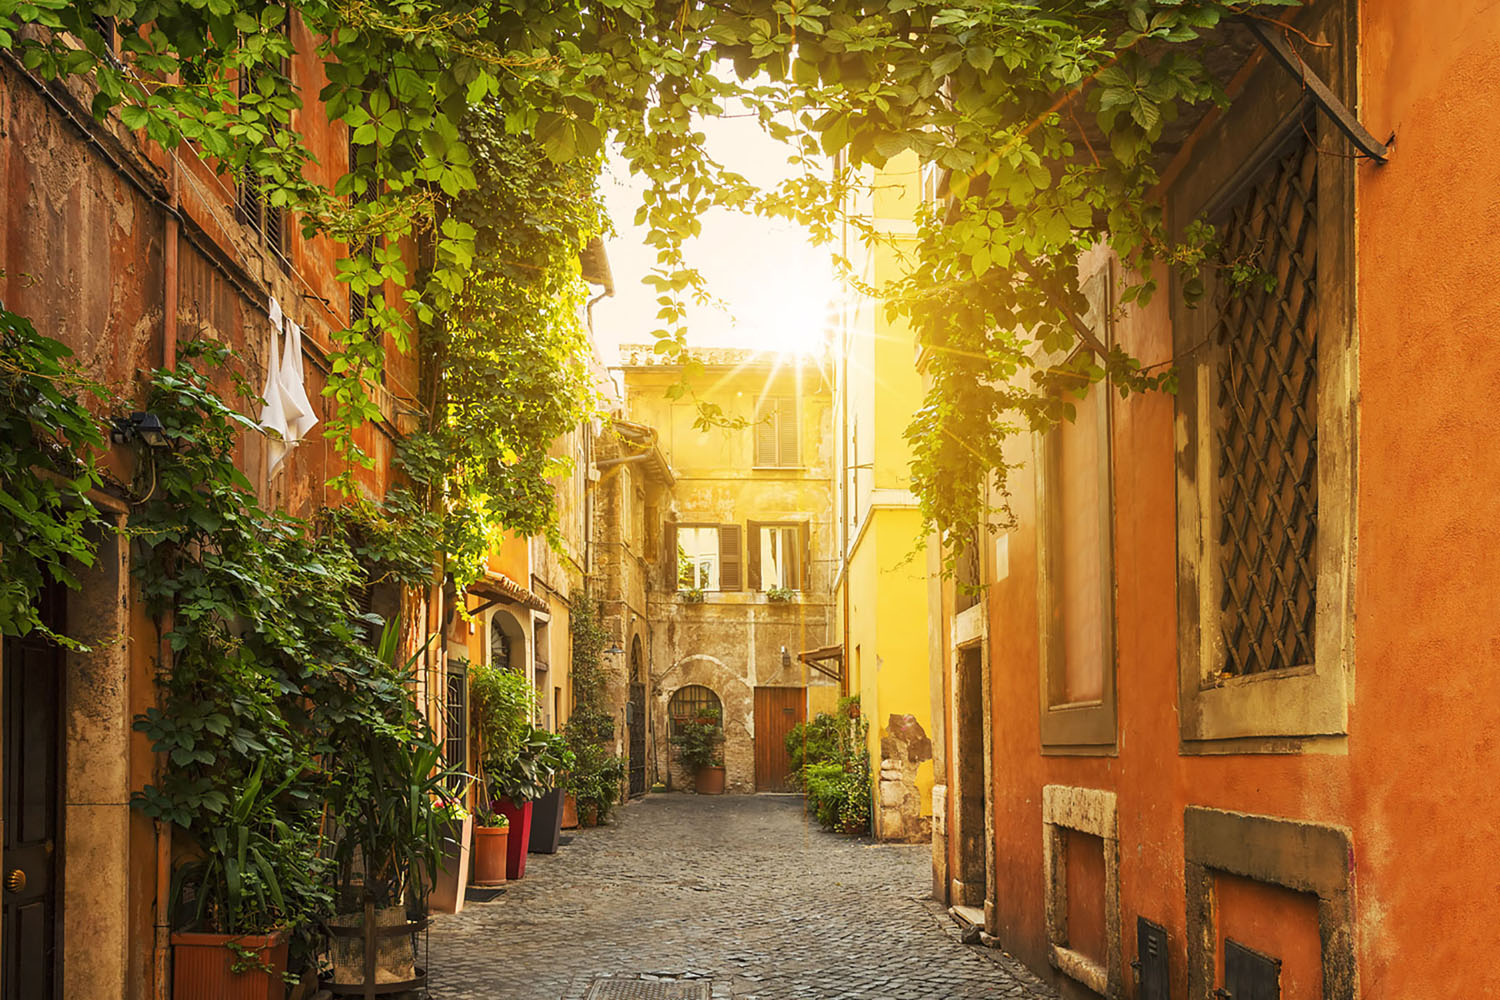 A quiet street in Rome's Trastevere neighborhood.